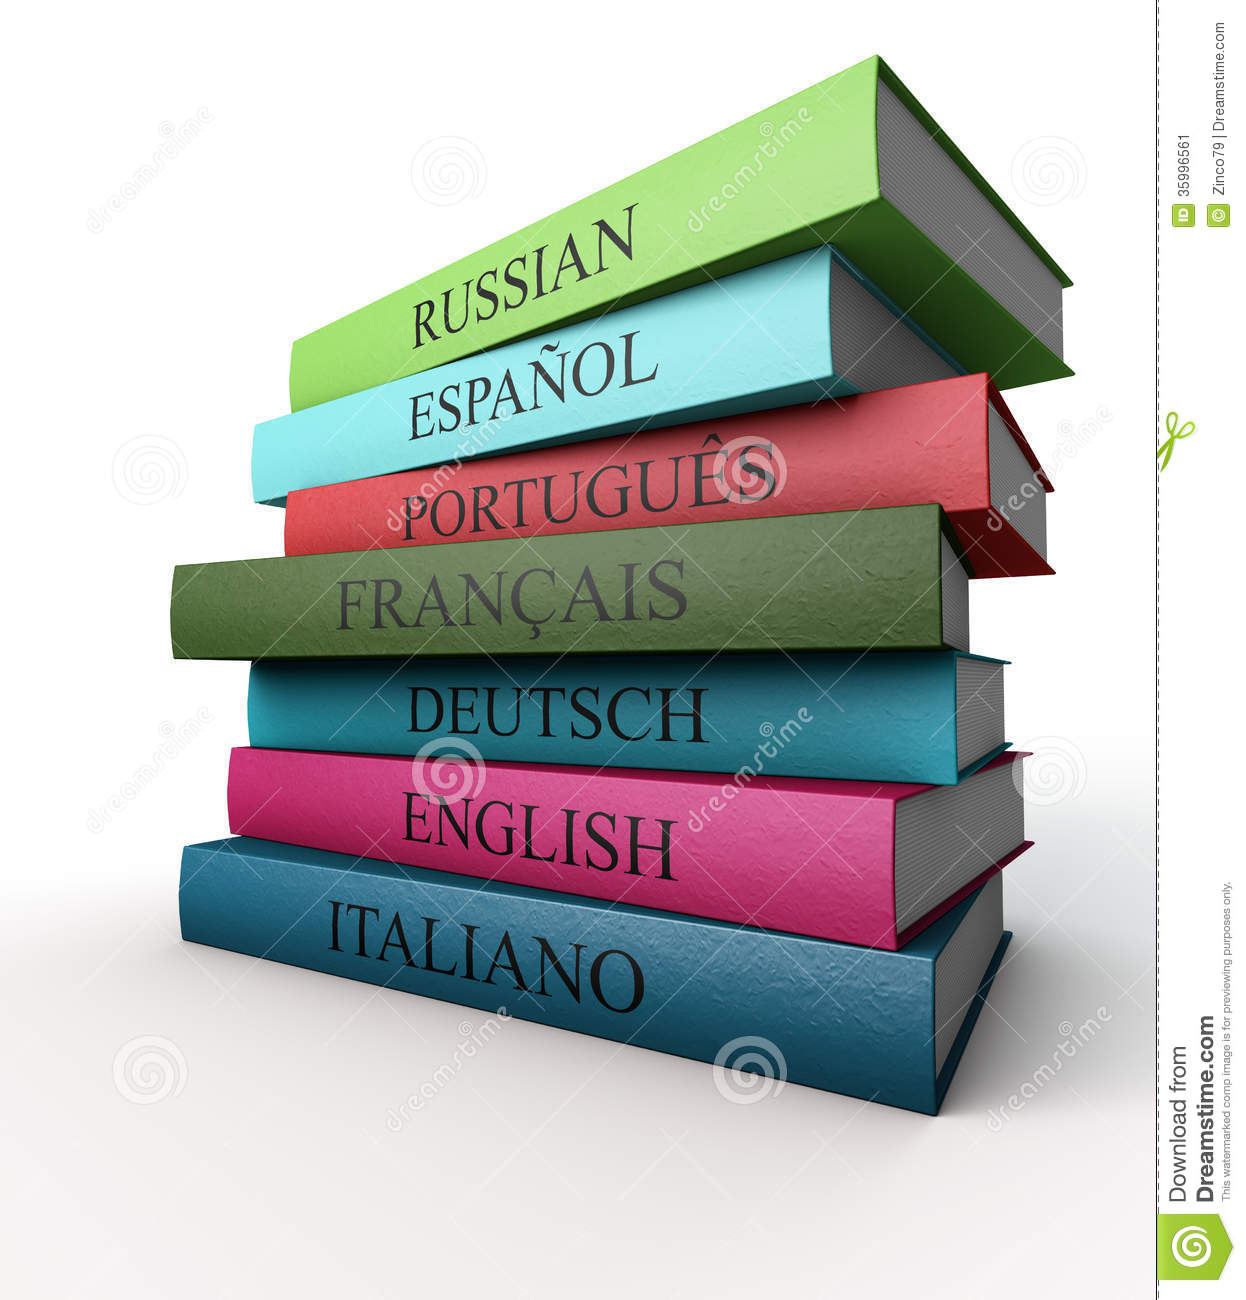 English In Italian: Seven Dictionaries Each Other, Italian, French, Spanish